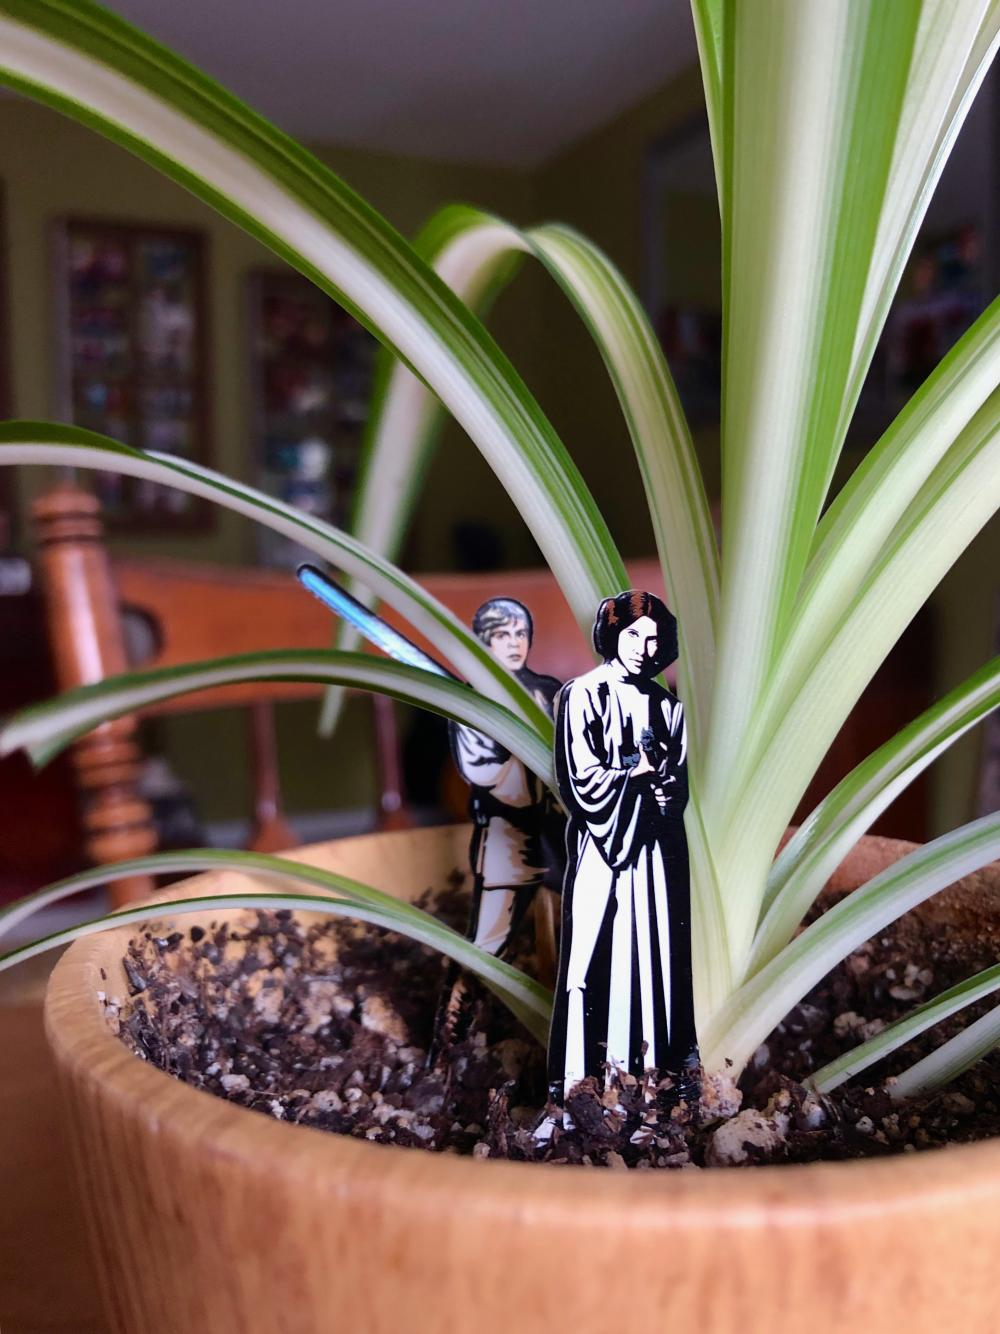 Leia and Luke in the spiderplant